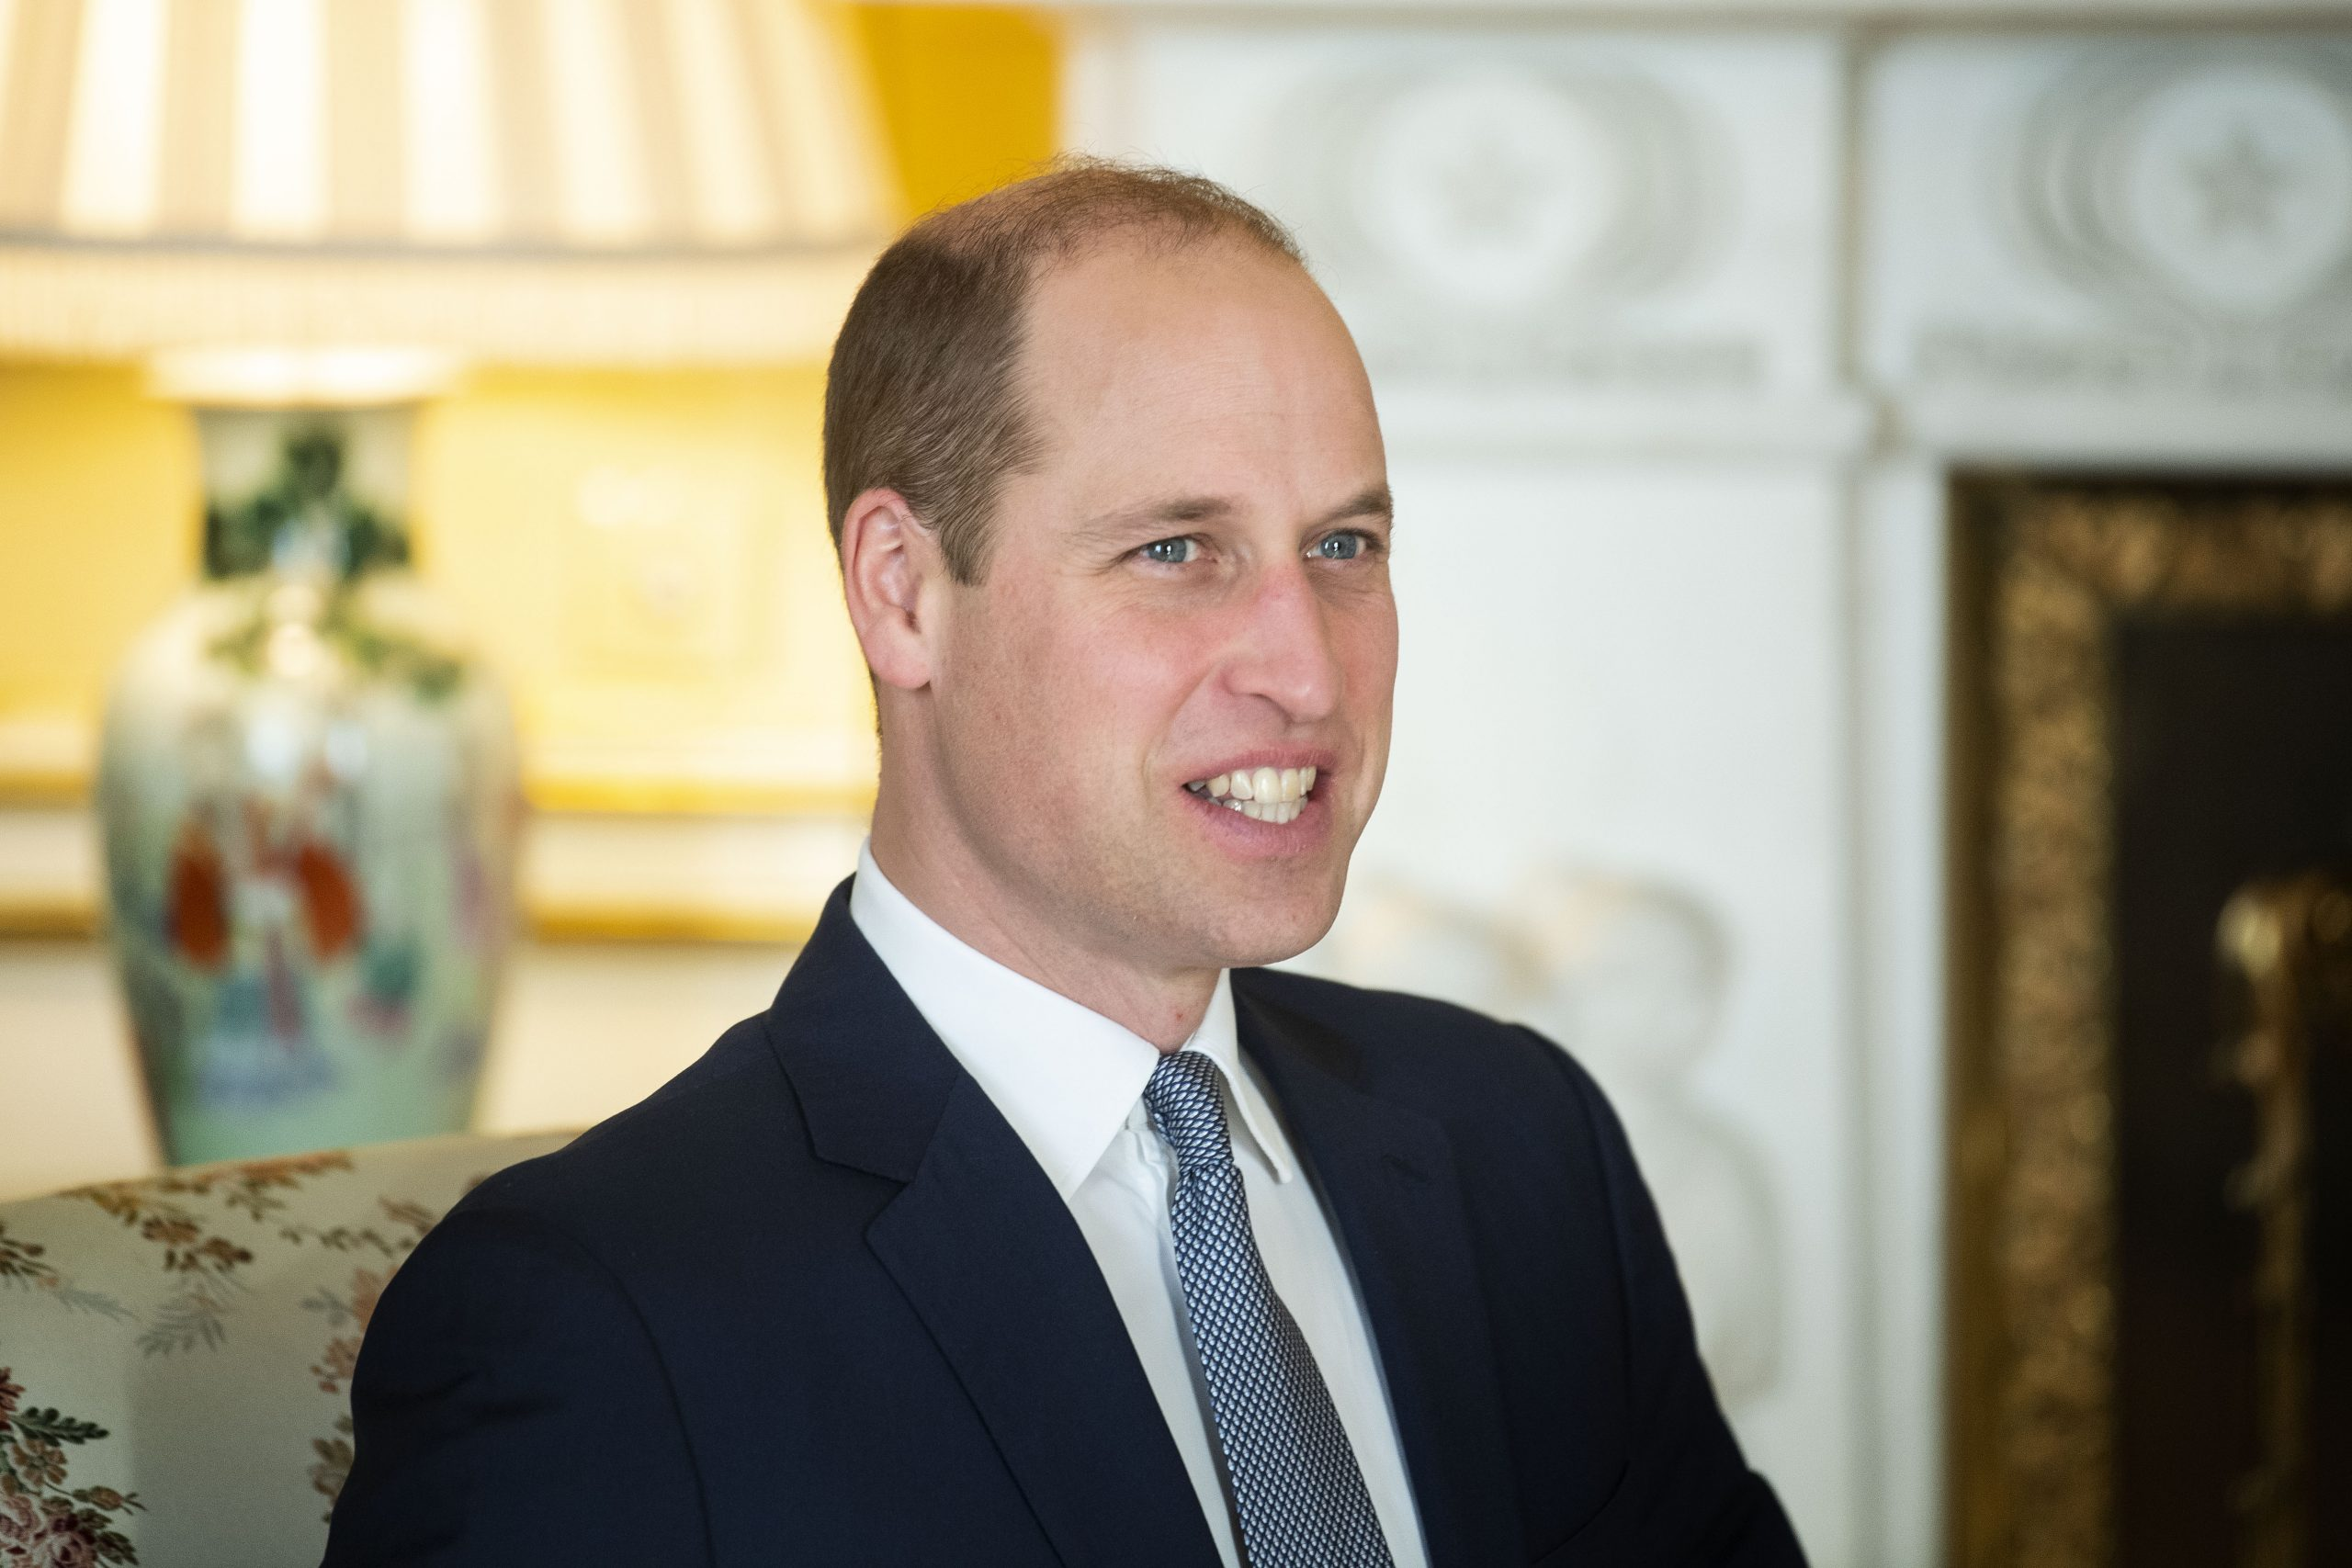 Prince William has been given a new royal title by the Queen following Harry and Meghan's split from the royal family